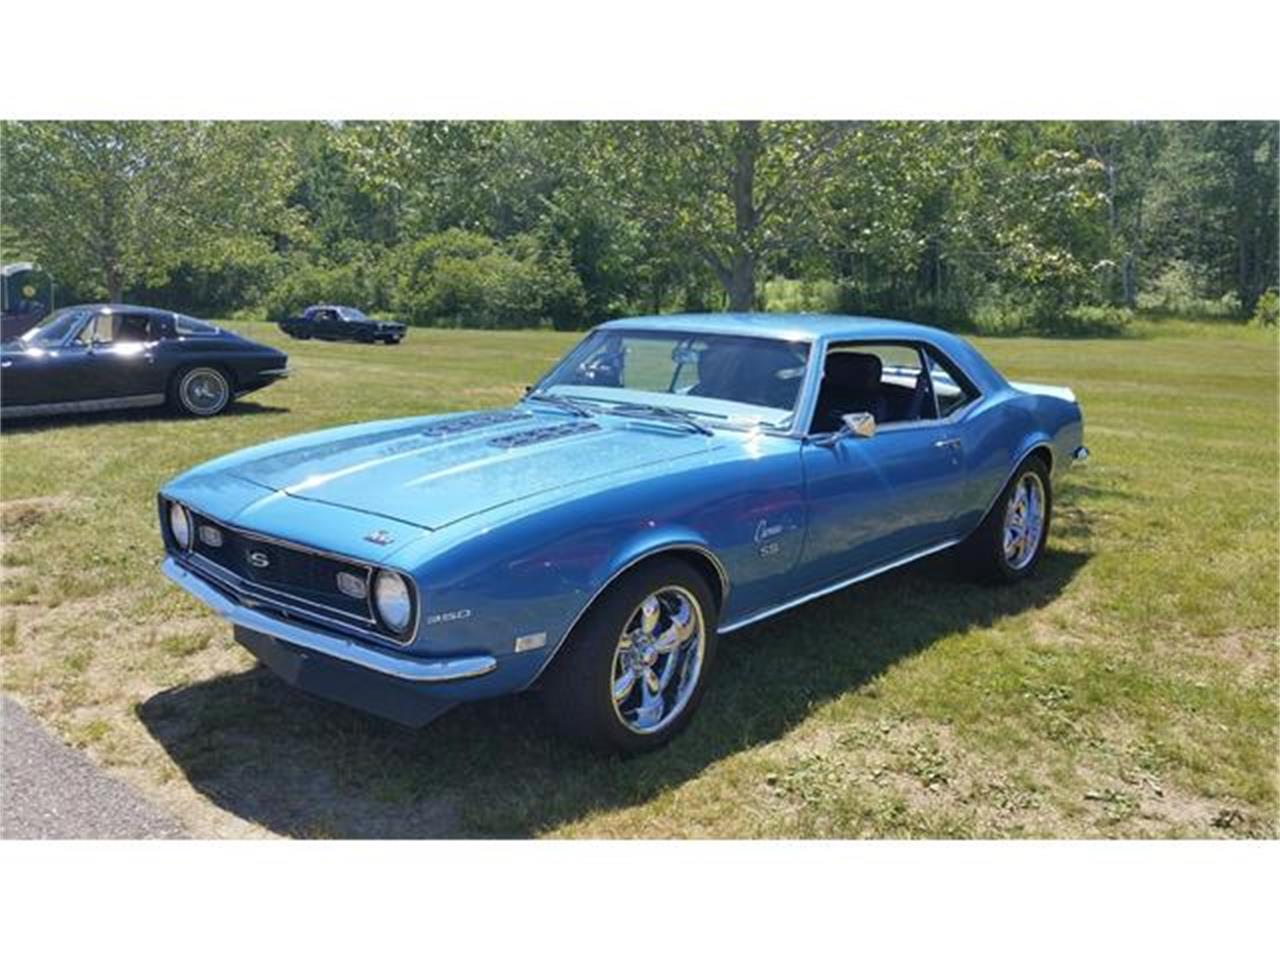 Large Picture of 1968 Chevrolet Camaro - $41,500.00 Offered by a Private Seller - QP8T